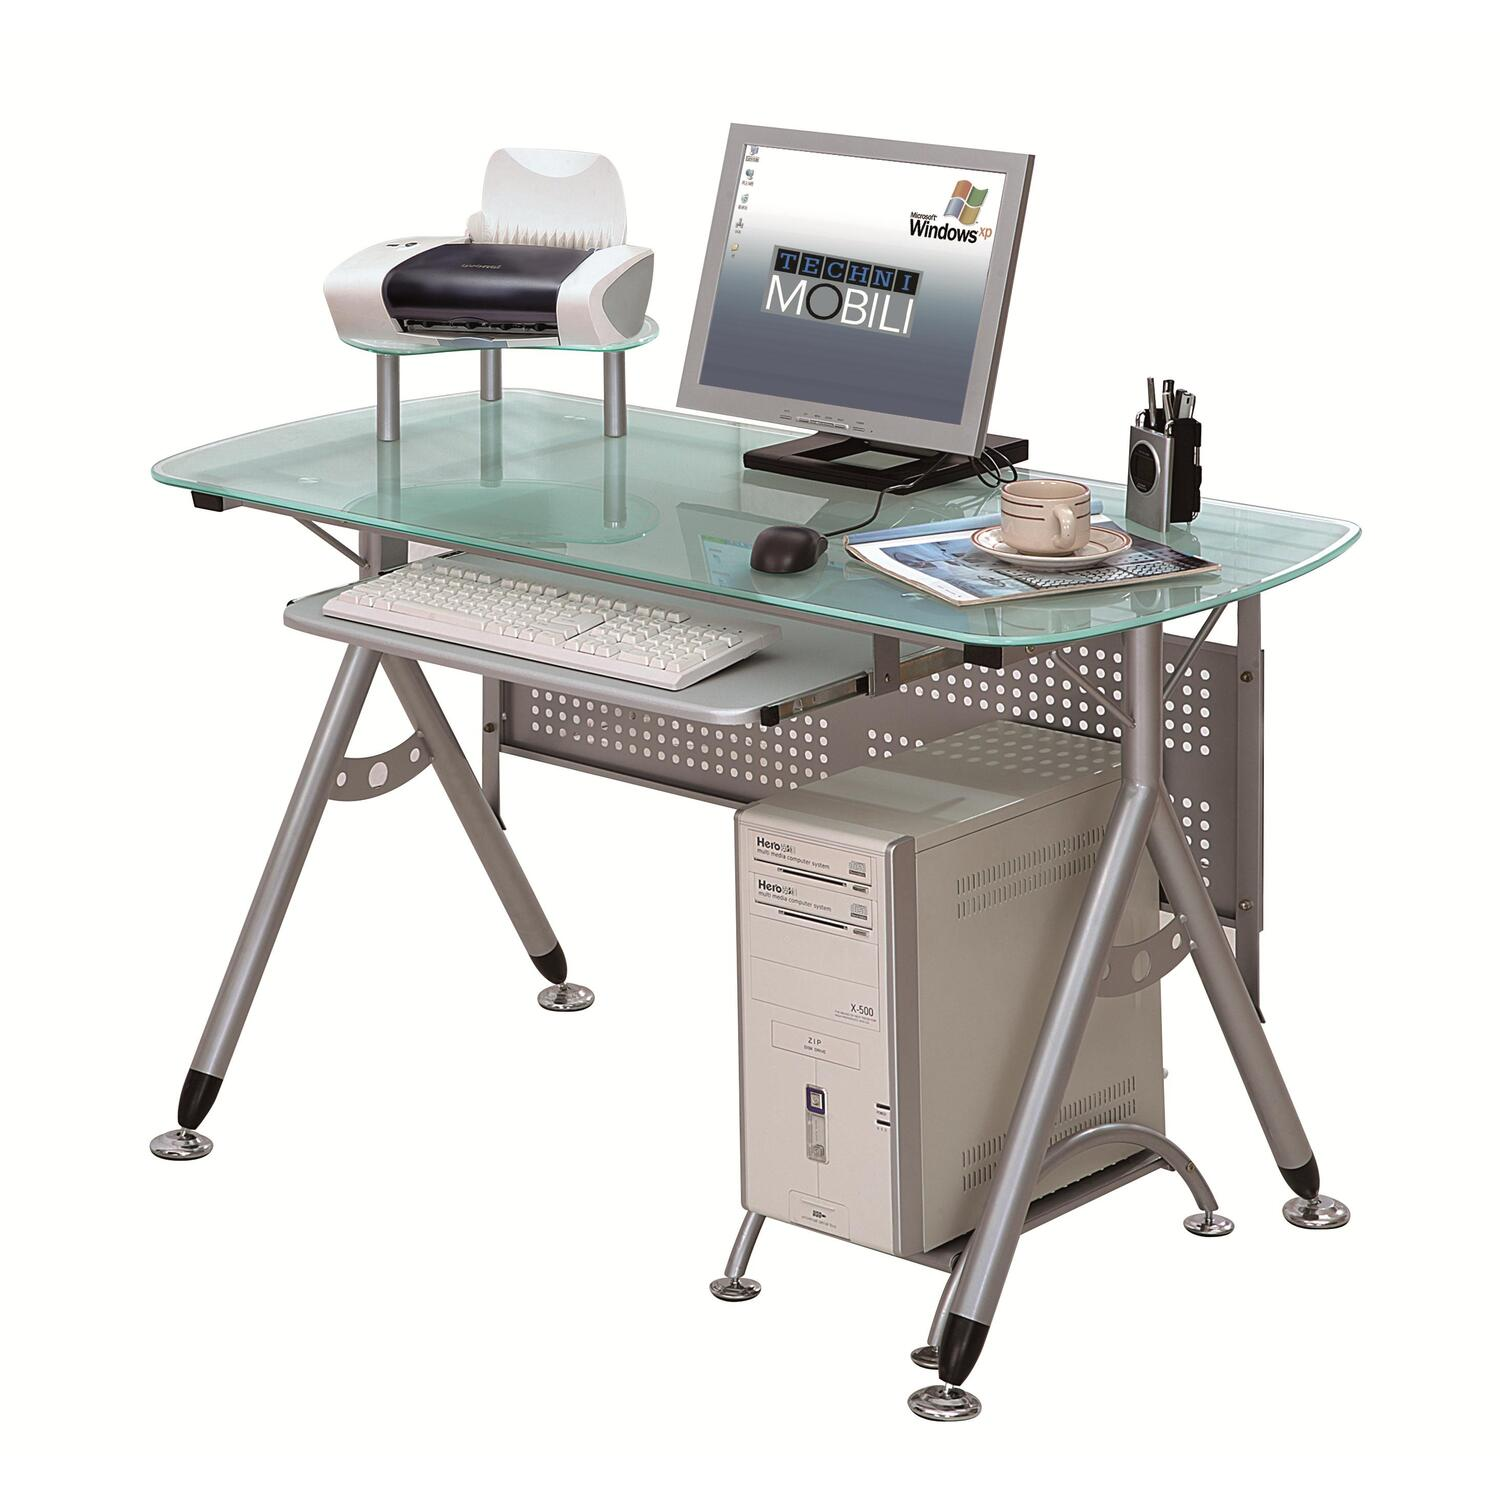 Multifunction Desk 240 99 Ojcommerce